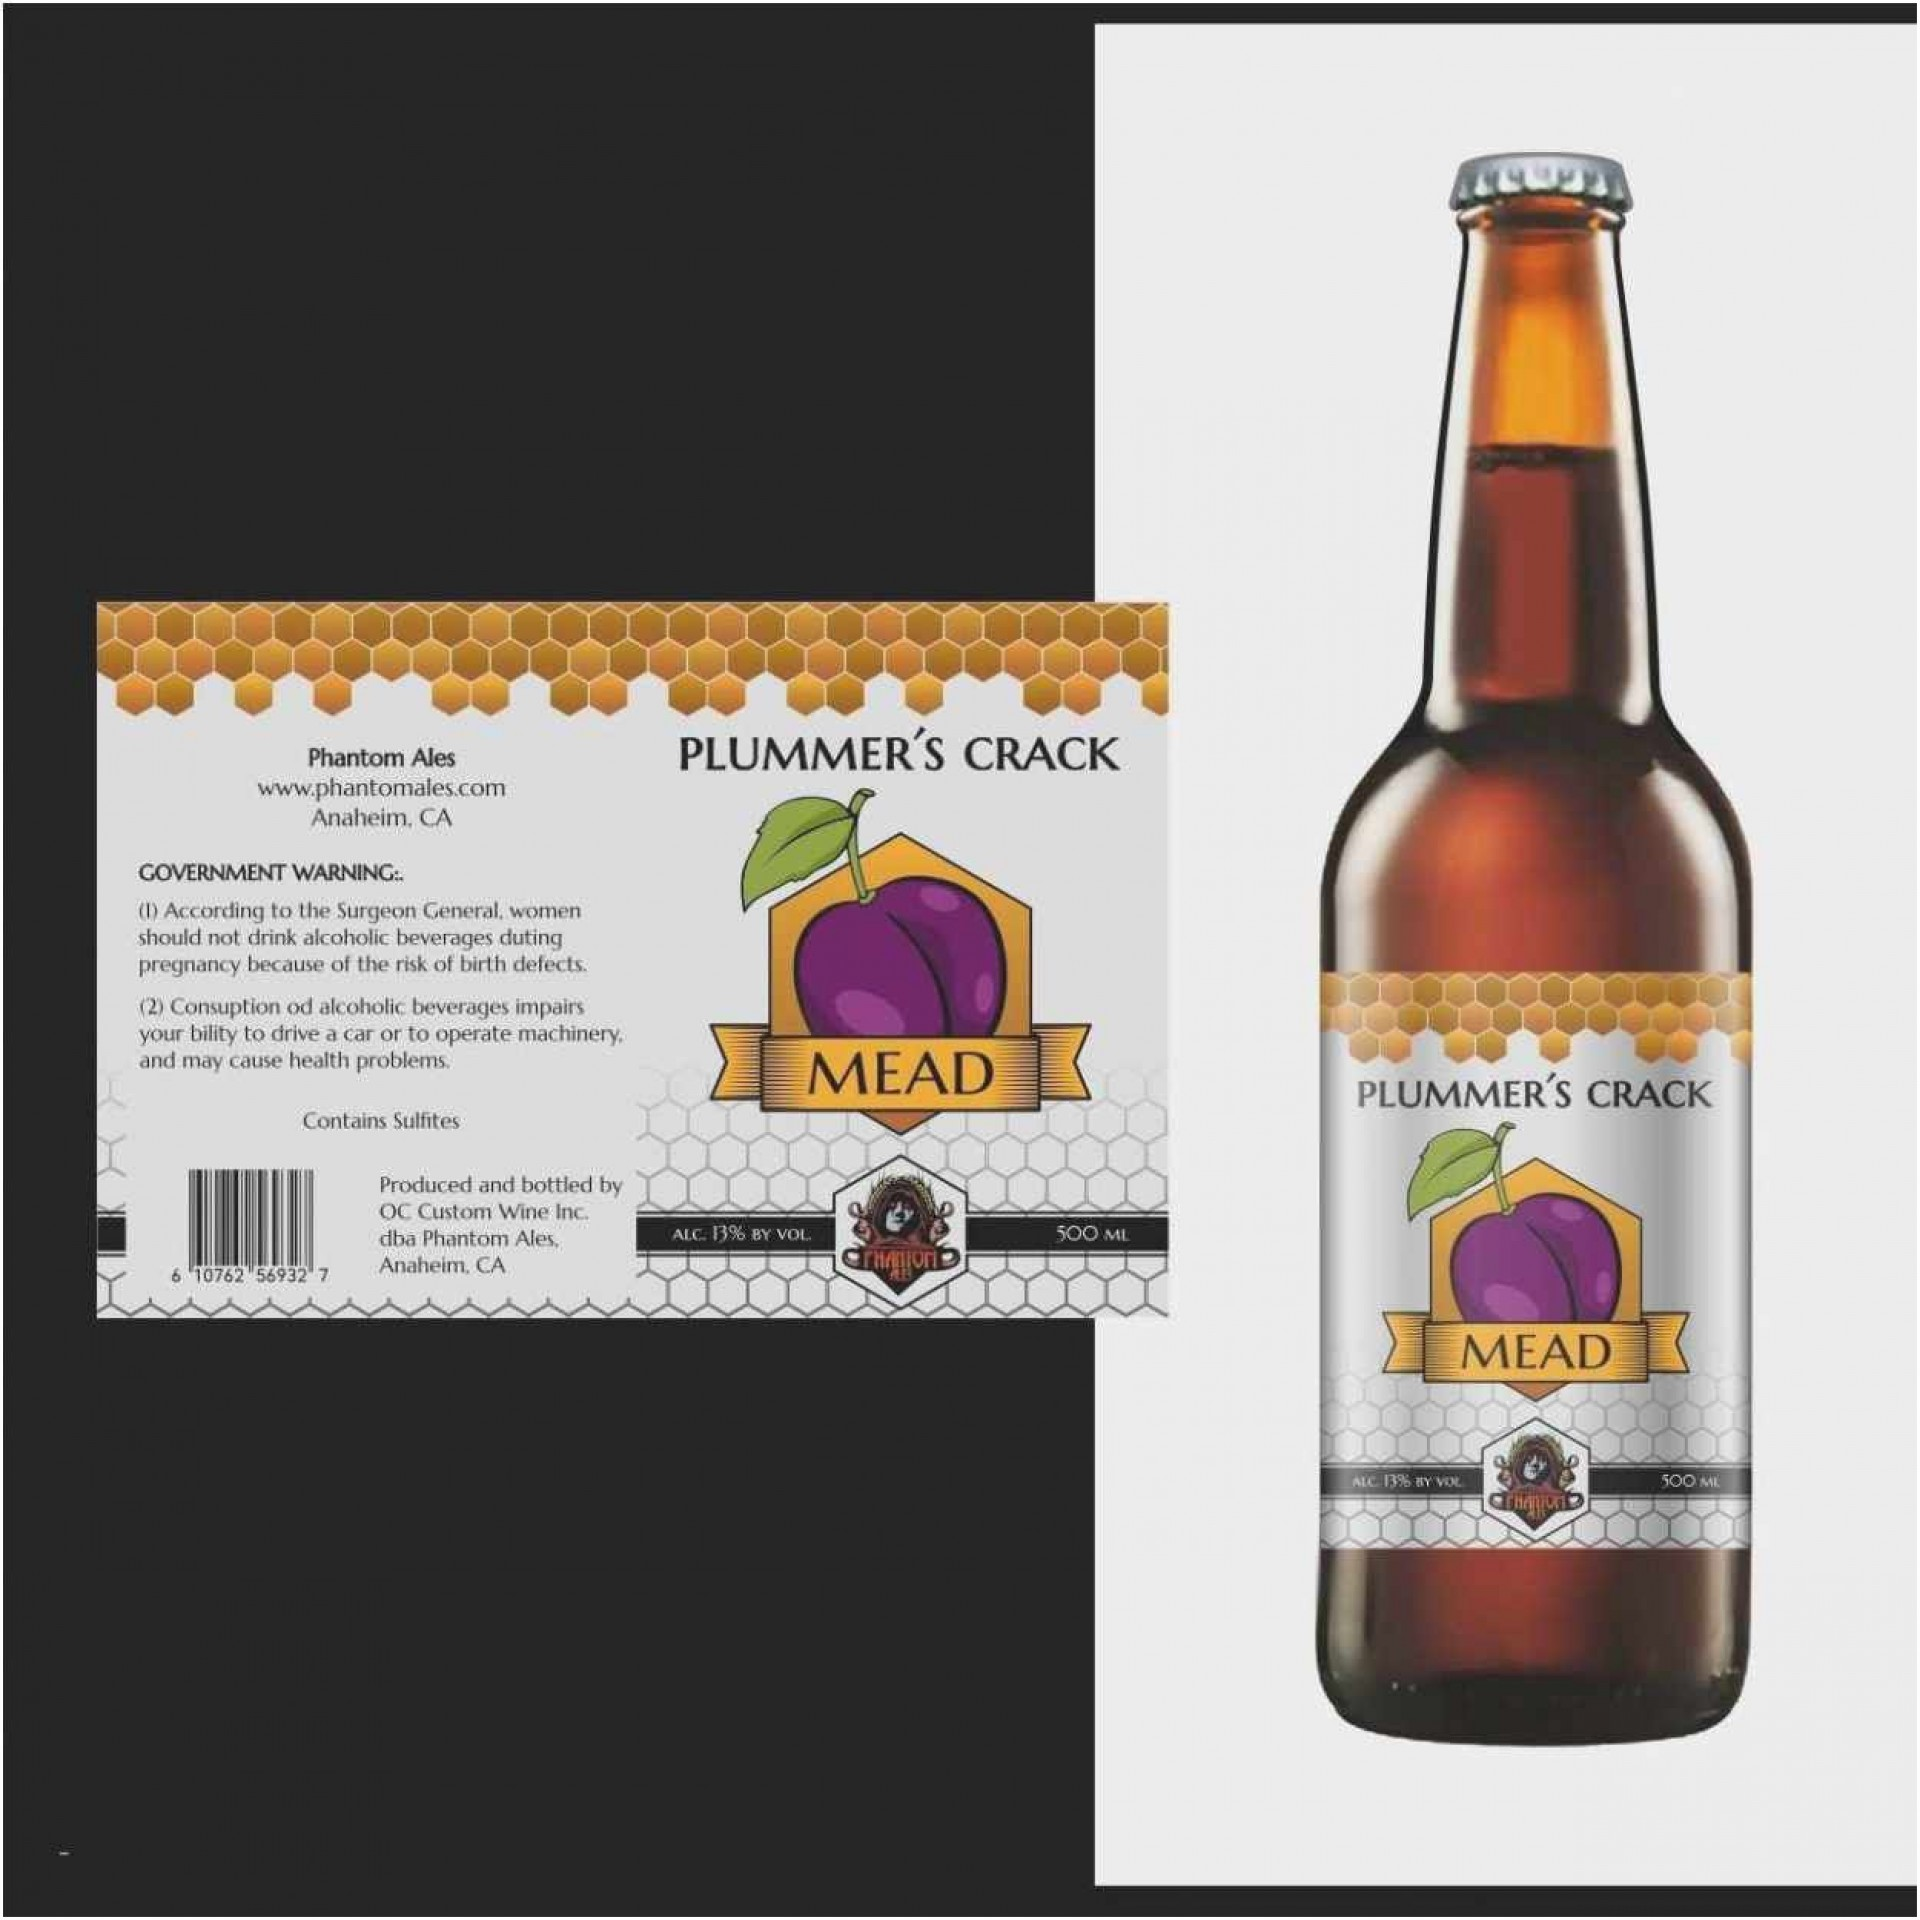 002 Incredible Microsoft Word Beer Bottle Label Template Photo 1920